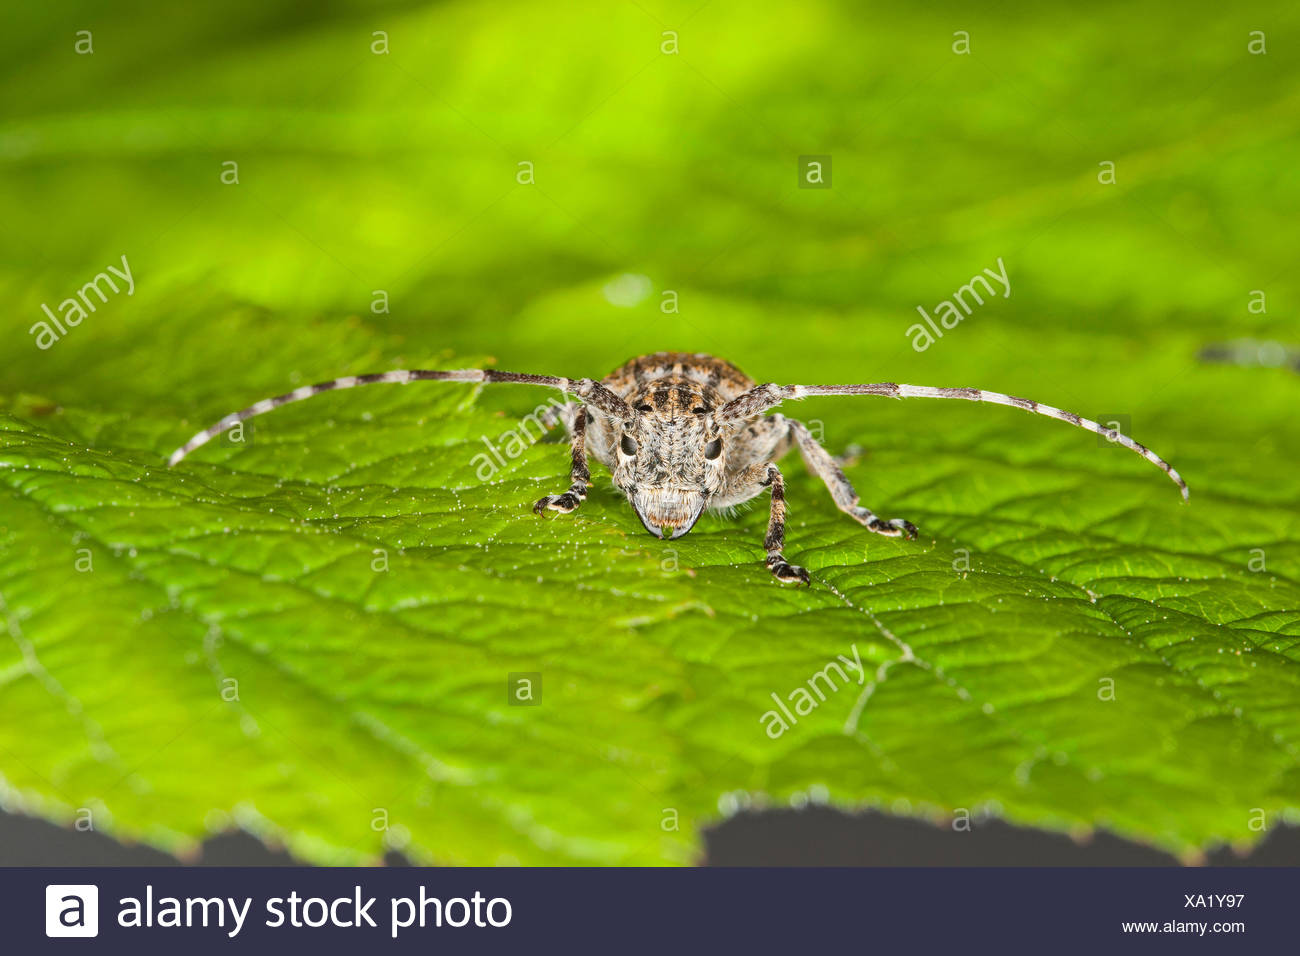 White-clouded longhorn beetle (Mesosa nebulosa), on a leaf, Germany - Stock Image